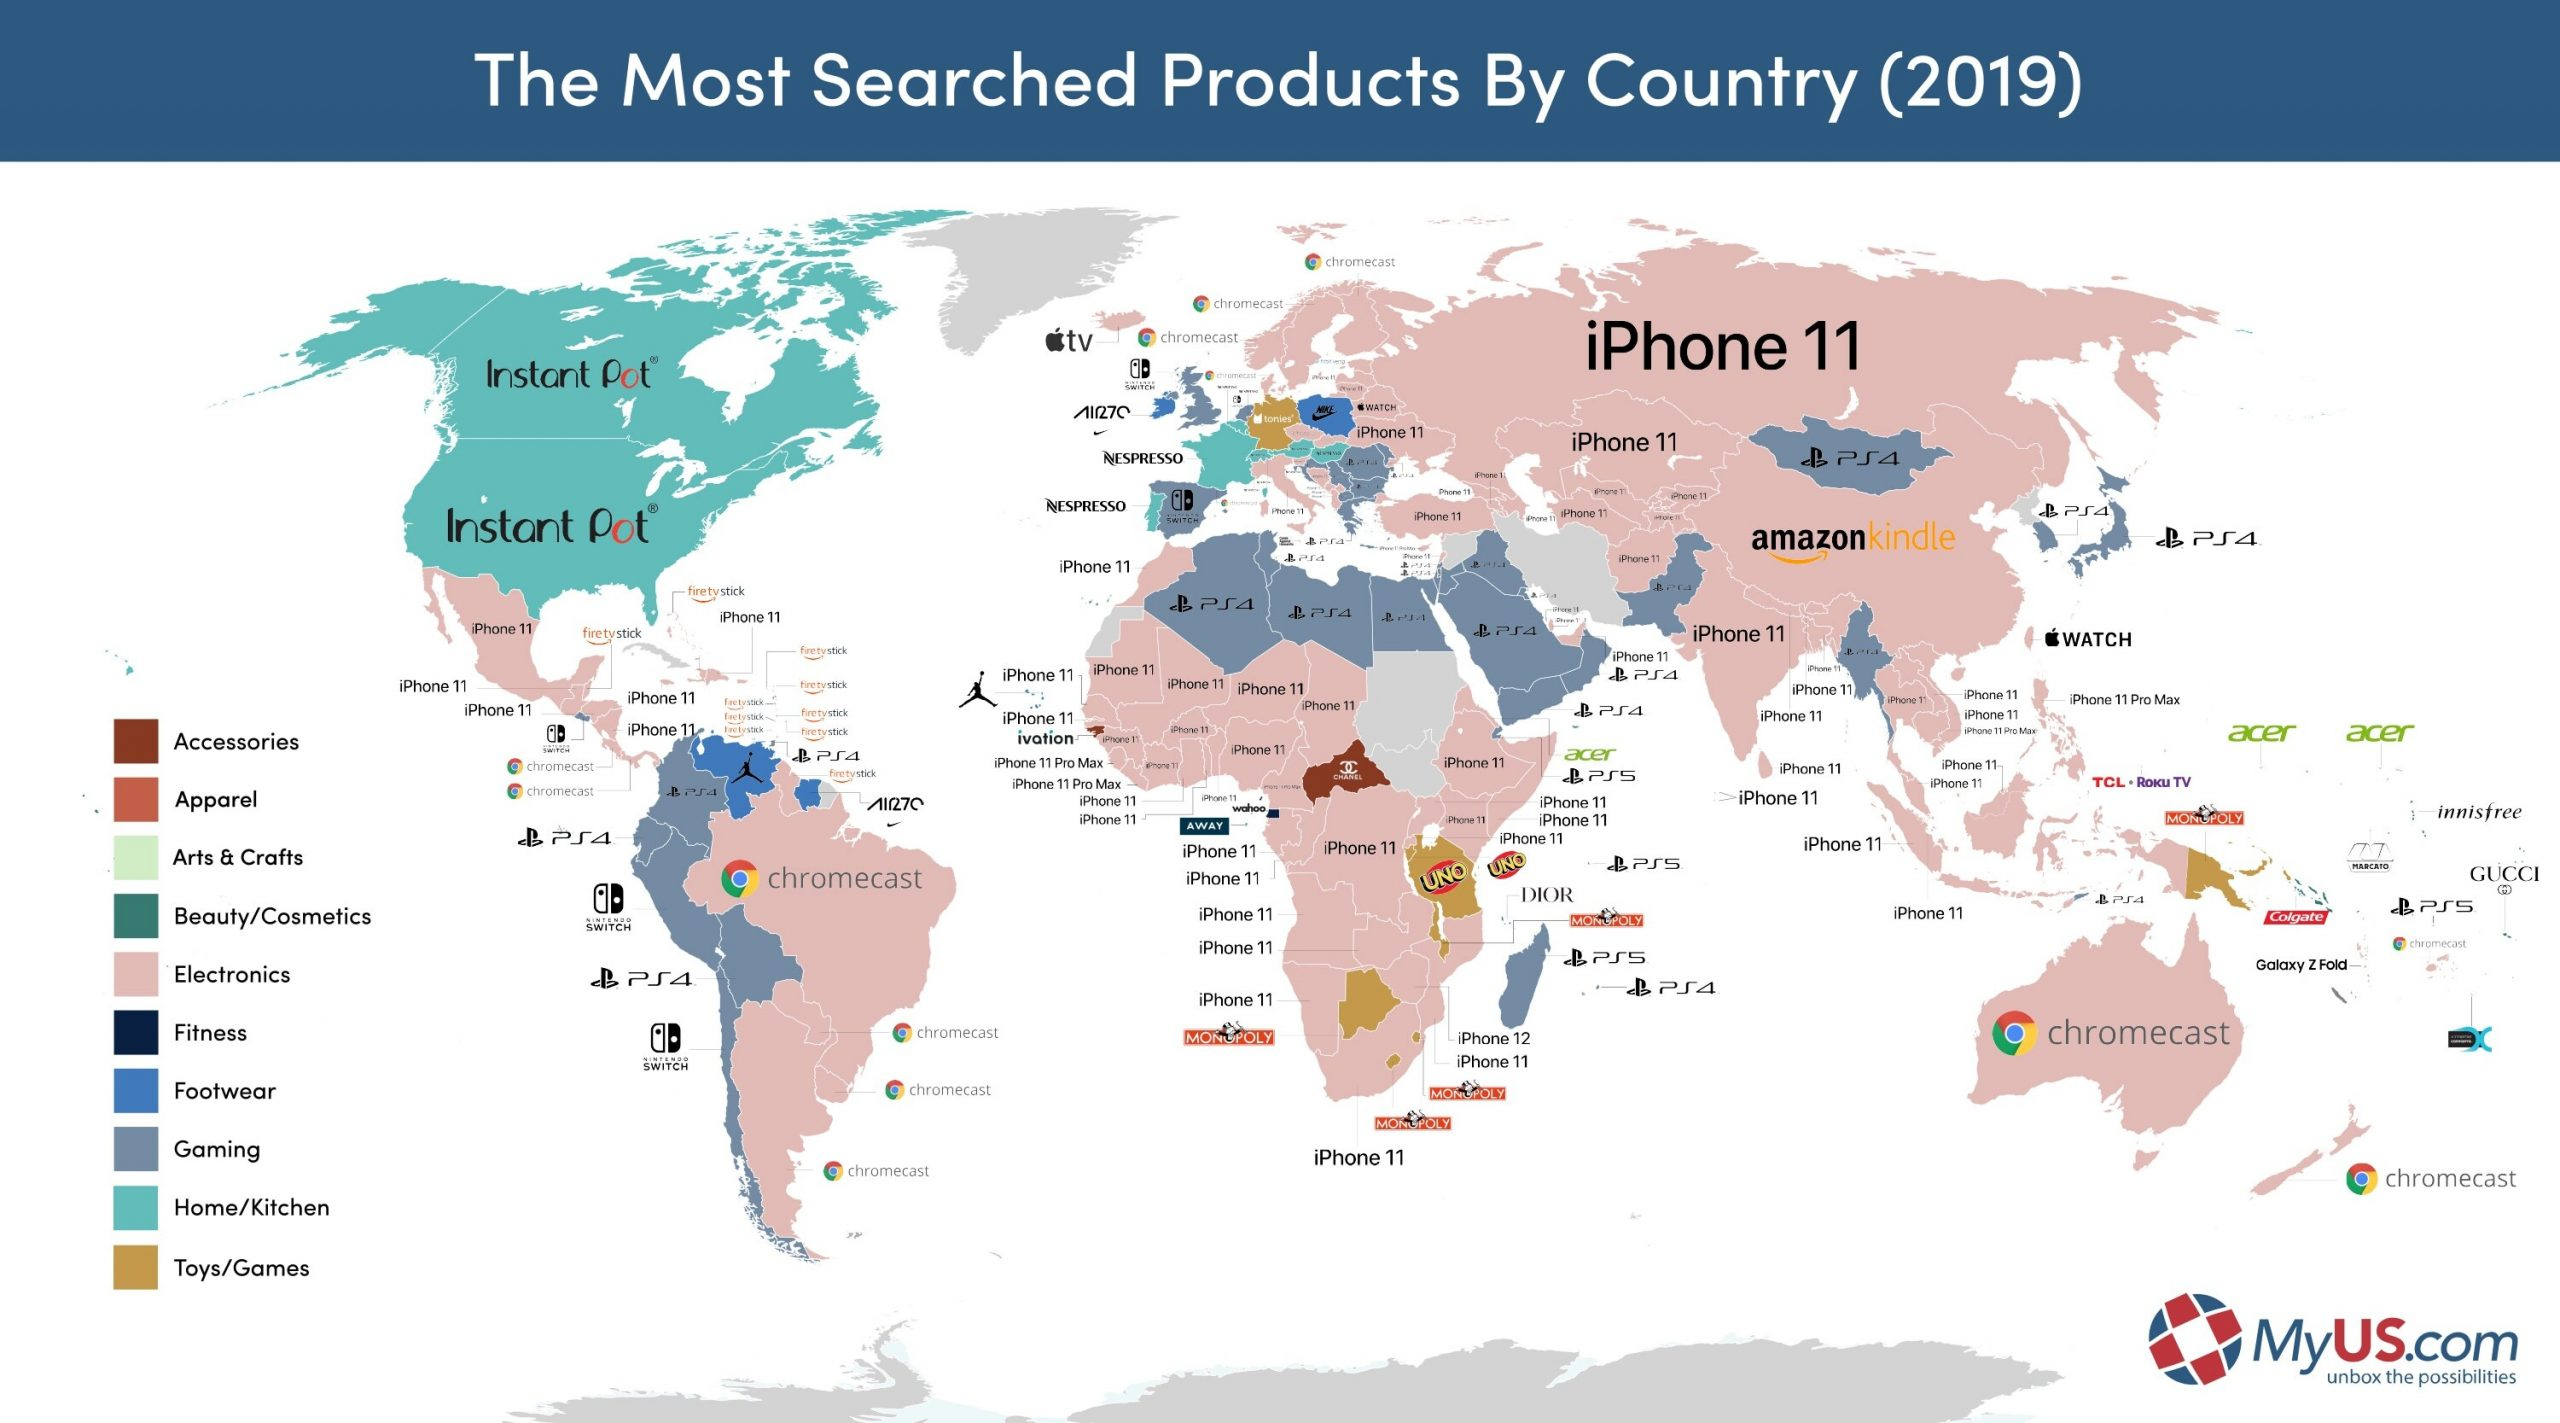 Map of the most searched products in 2019